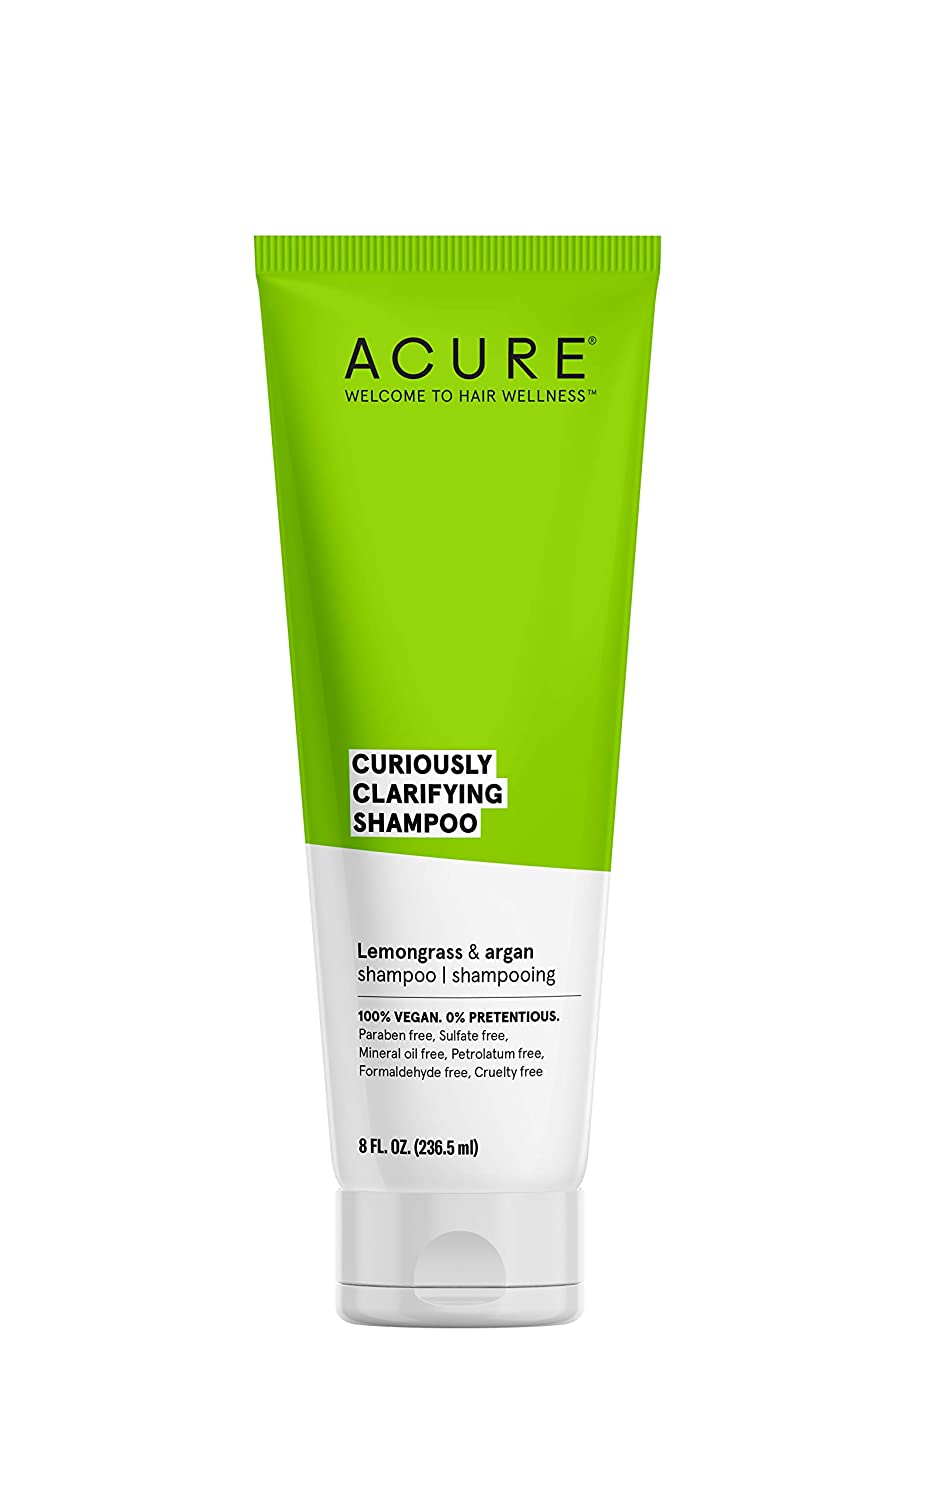 ACURE Curiously Clarifying Shampoo - Lemongrass & Argan | 100% Vegan | Performance Driven Hair Care | Gently Cleanses, Removes Buildup, Boost Shine & Replenishes Moisture | 8 Fl Oz